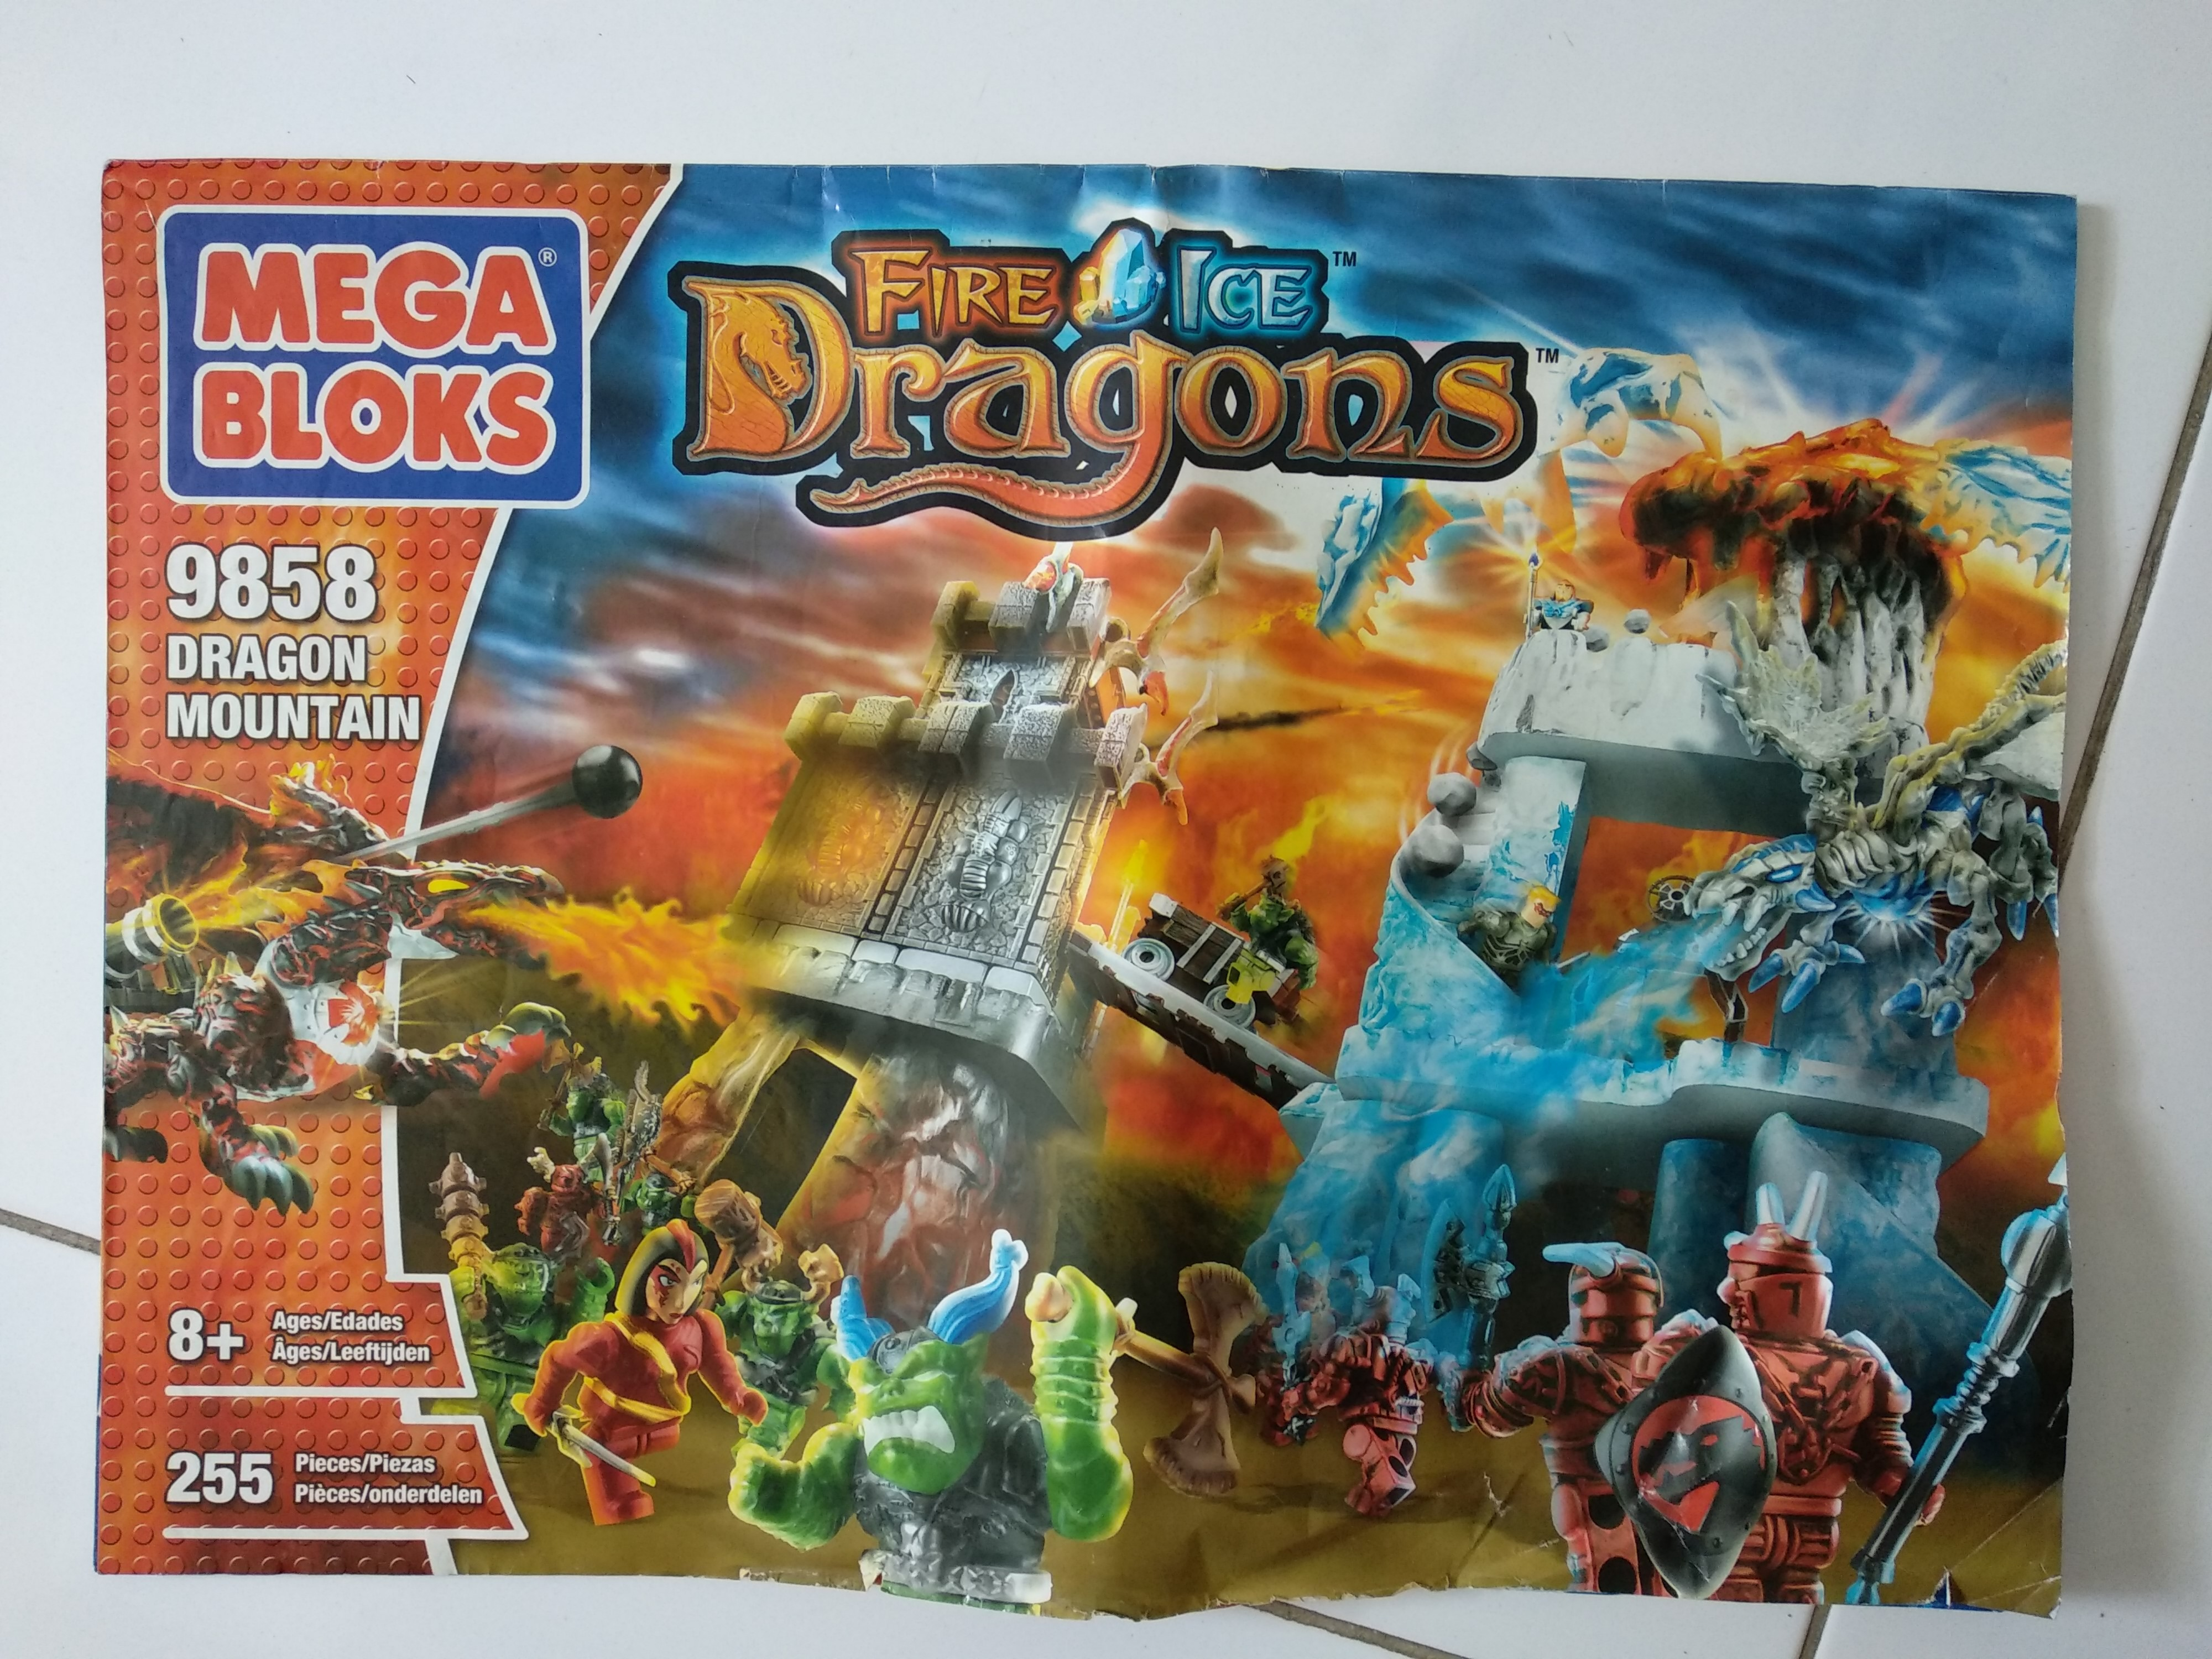 Megabloks Fire & Ice Dragons -Dragon Mountain, Toys & Games